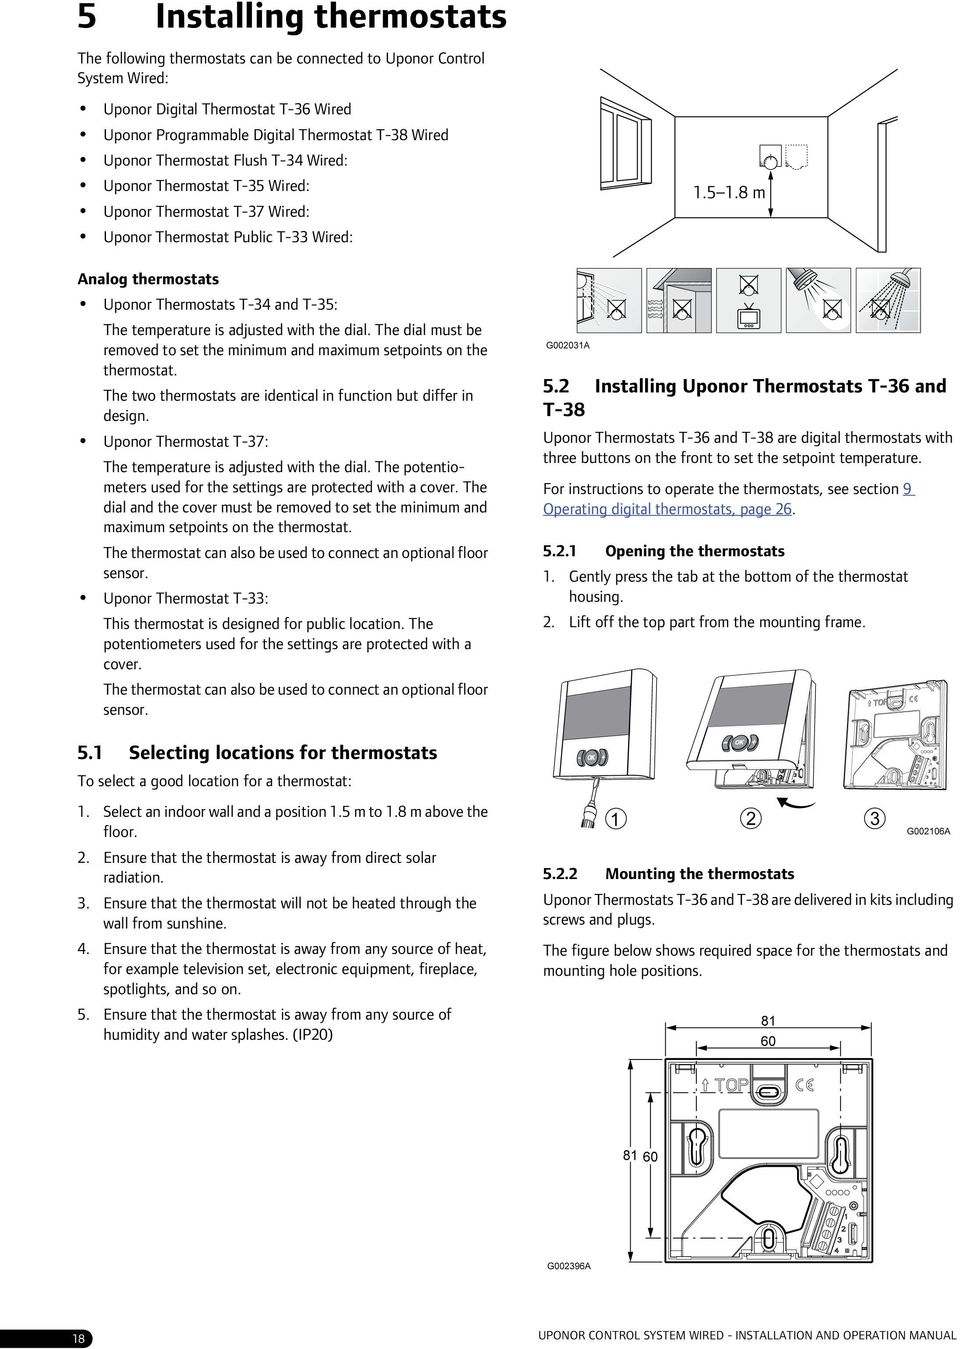 Indoor Climate Uponor Control System Wired Installation And Dial Thermostat Wiring Diagram Adjusted With The Must Be Removed To Set Minimum Maximum